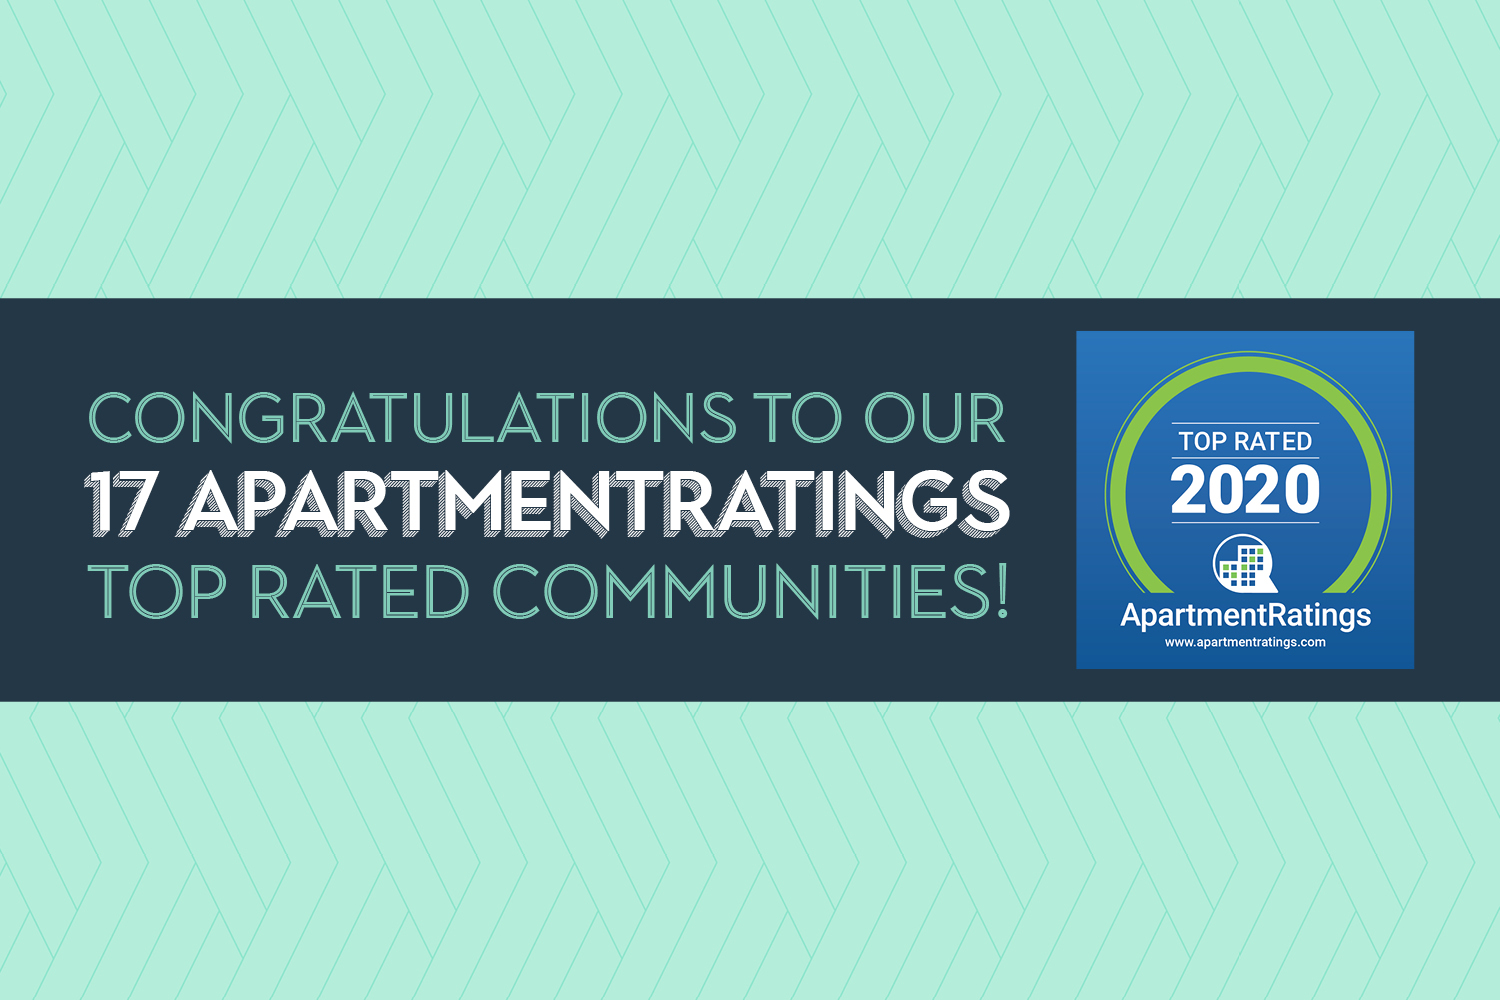 Exceptional customer service earns multifamily, student communities industry recognition